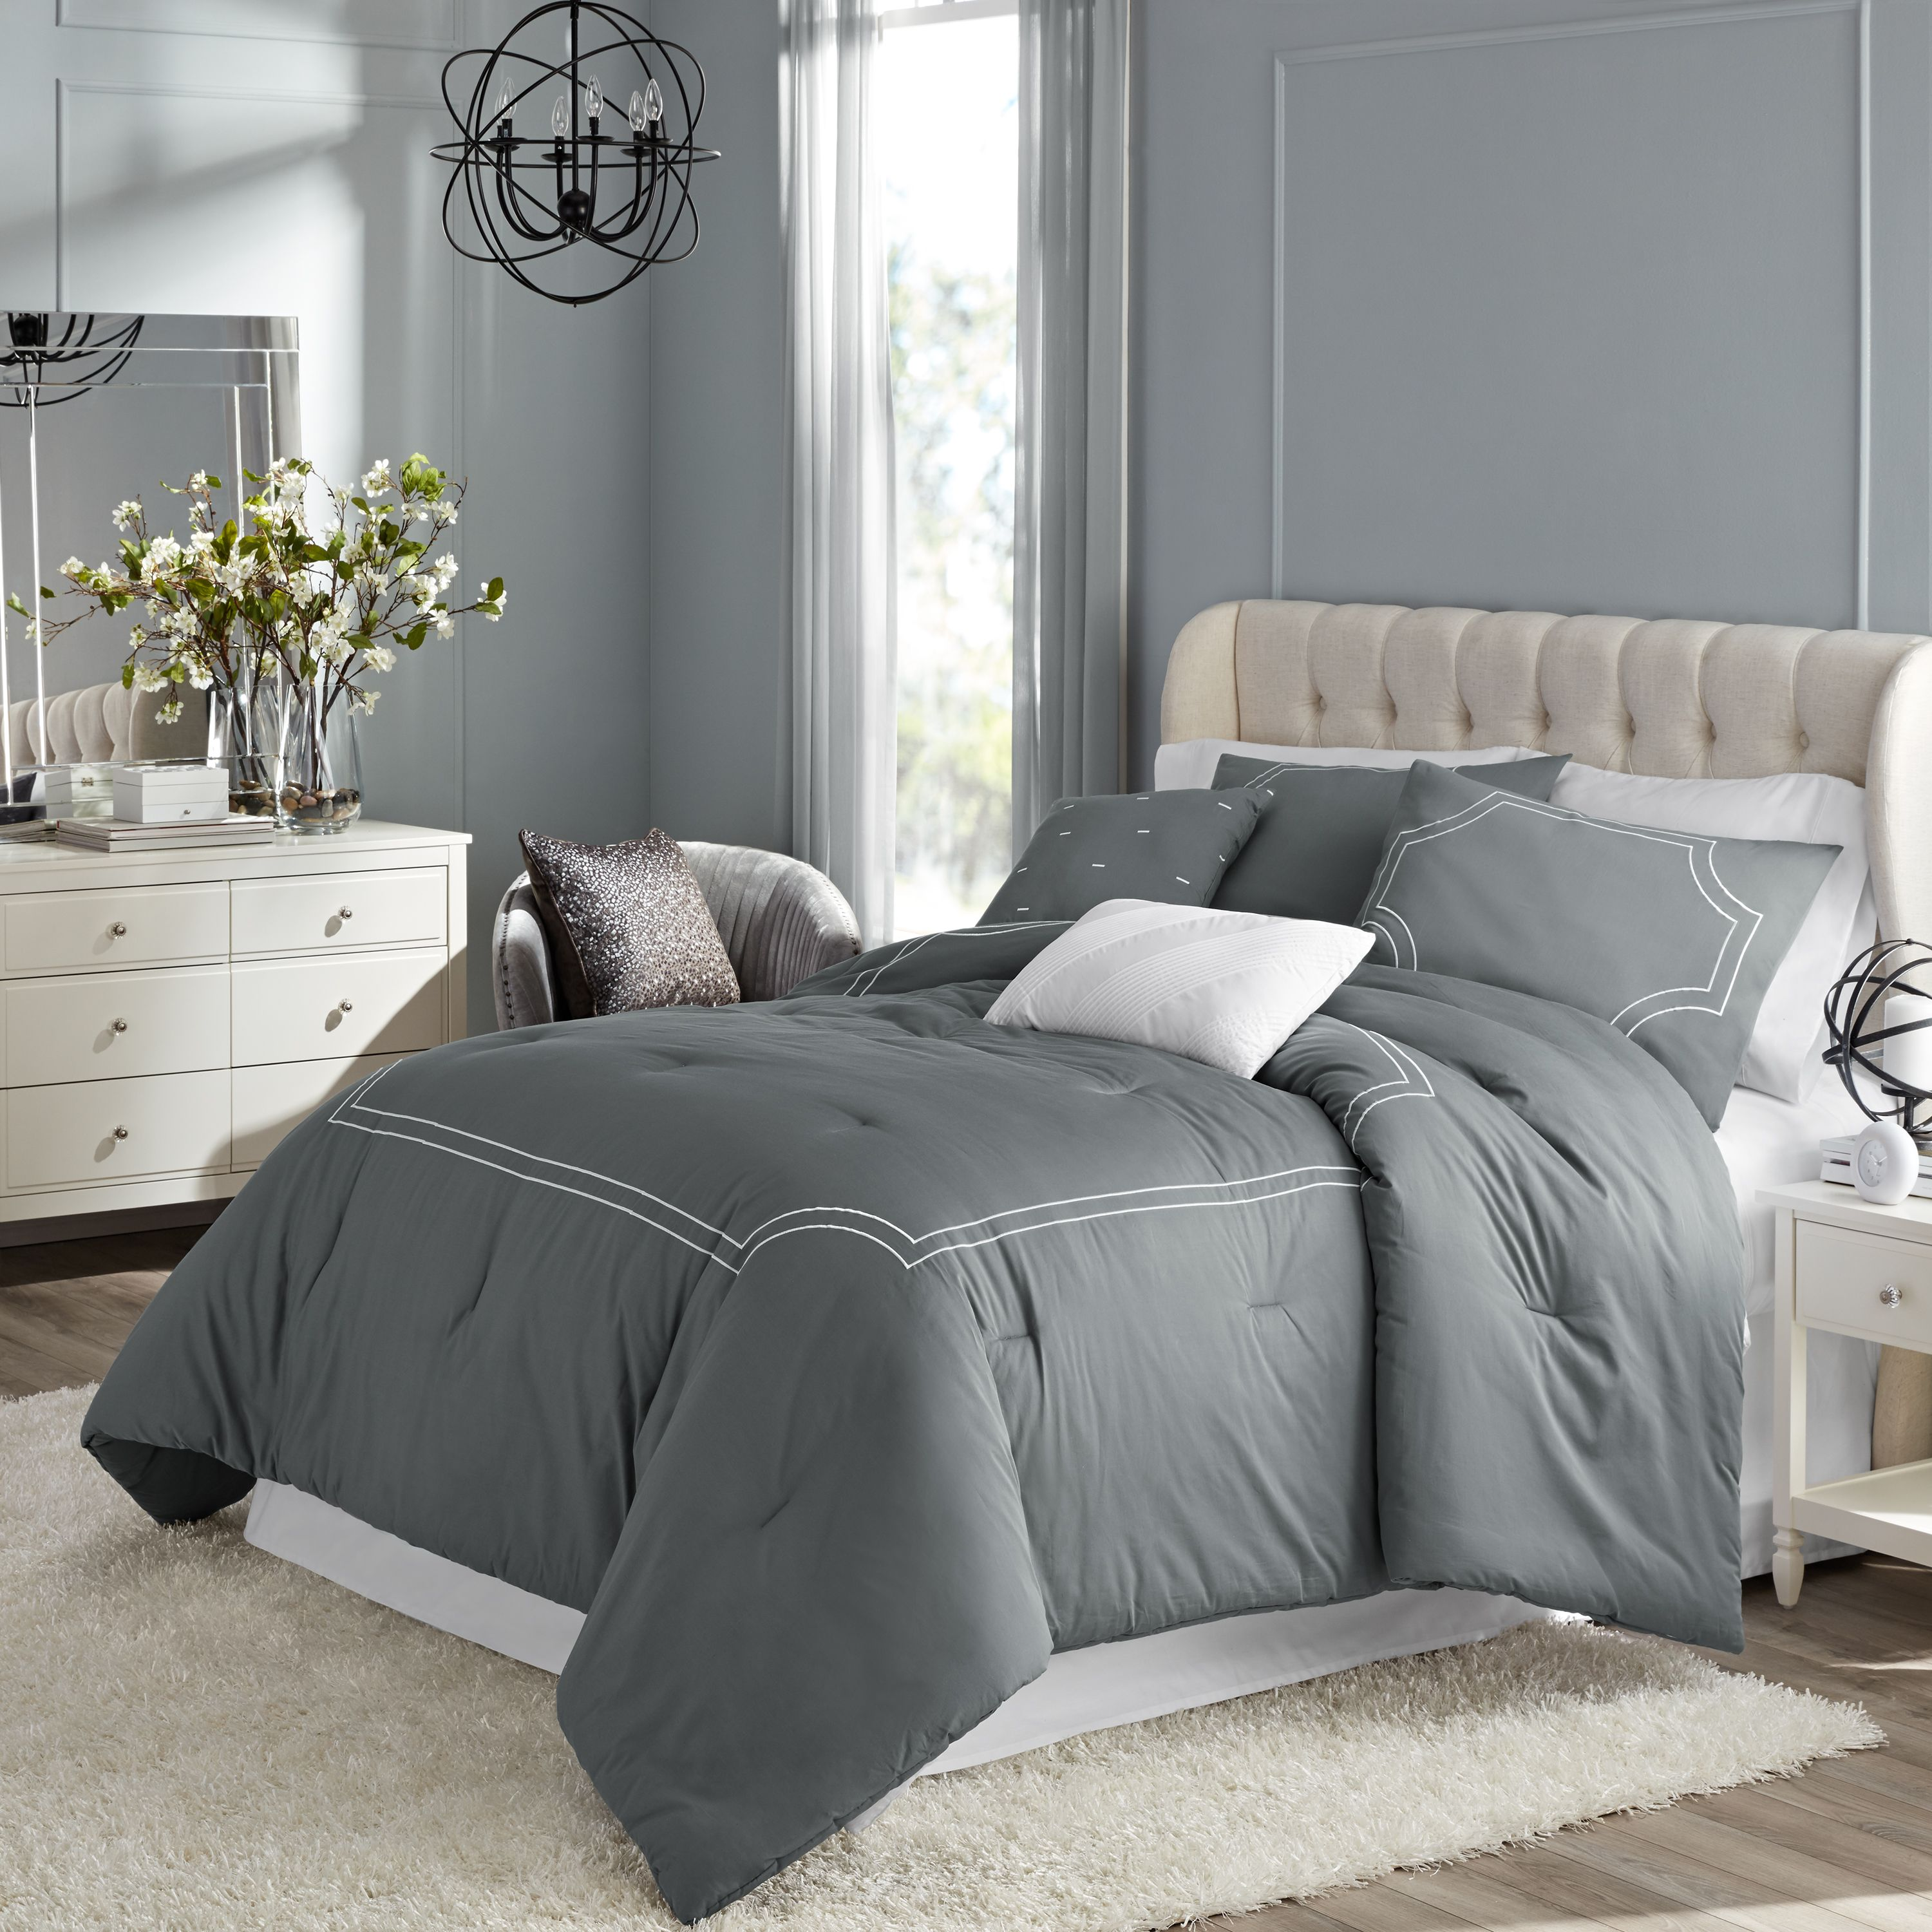 Hotel Style Florence Embroidered Duvet Cover Set, 3 Pieces